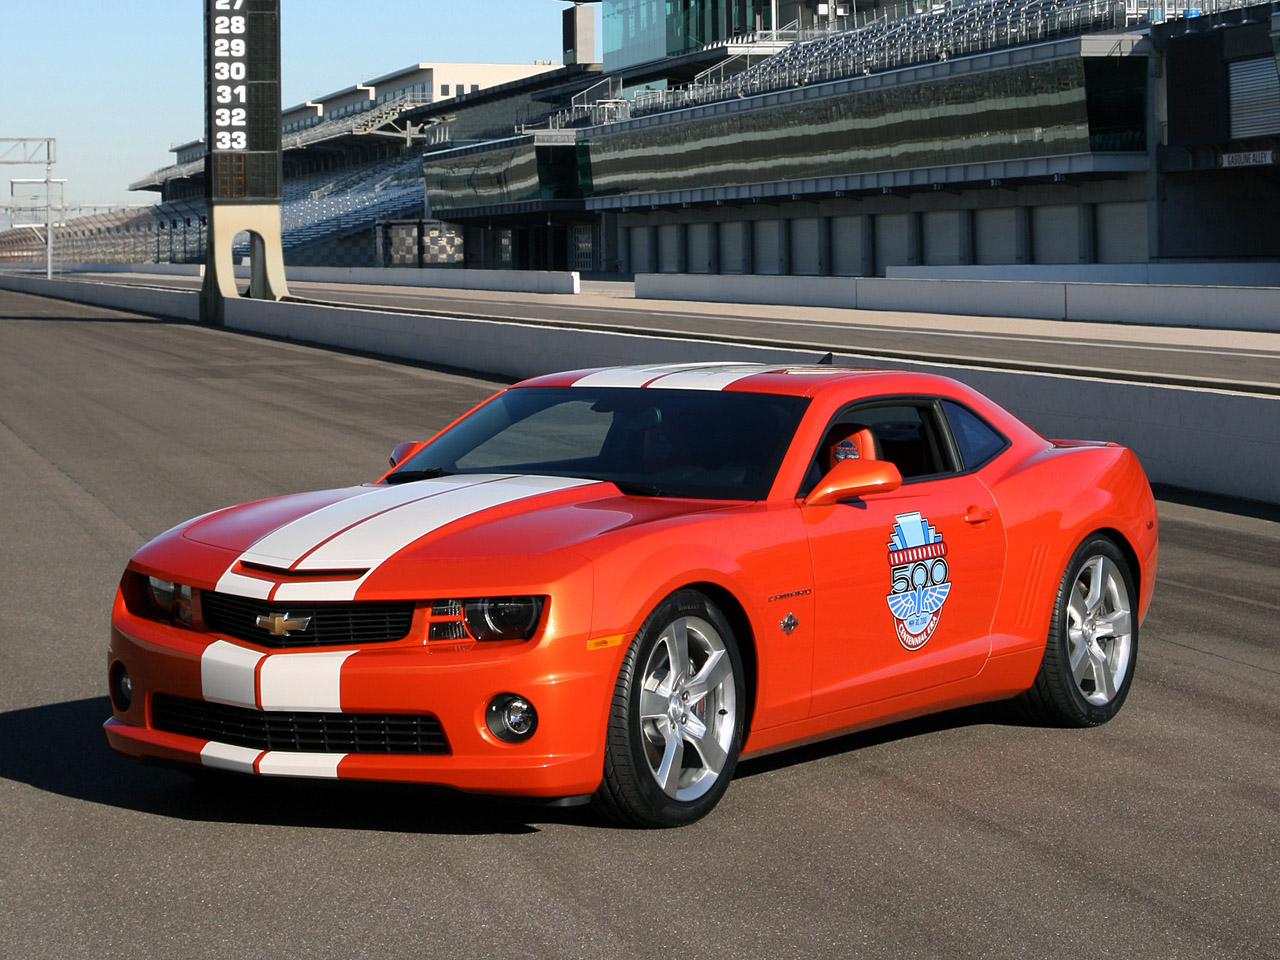 2010 chevrolet camaro indianapolis 500 pace car pictures specifications and information. Black Bedroom Furniture Sets. Home Design Ideas